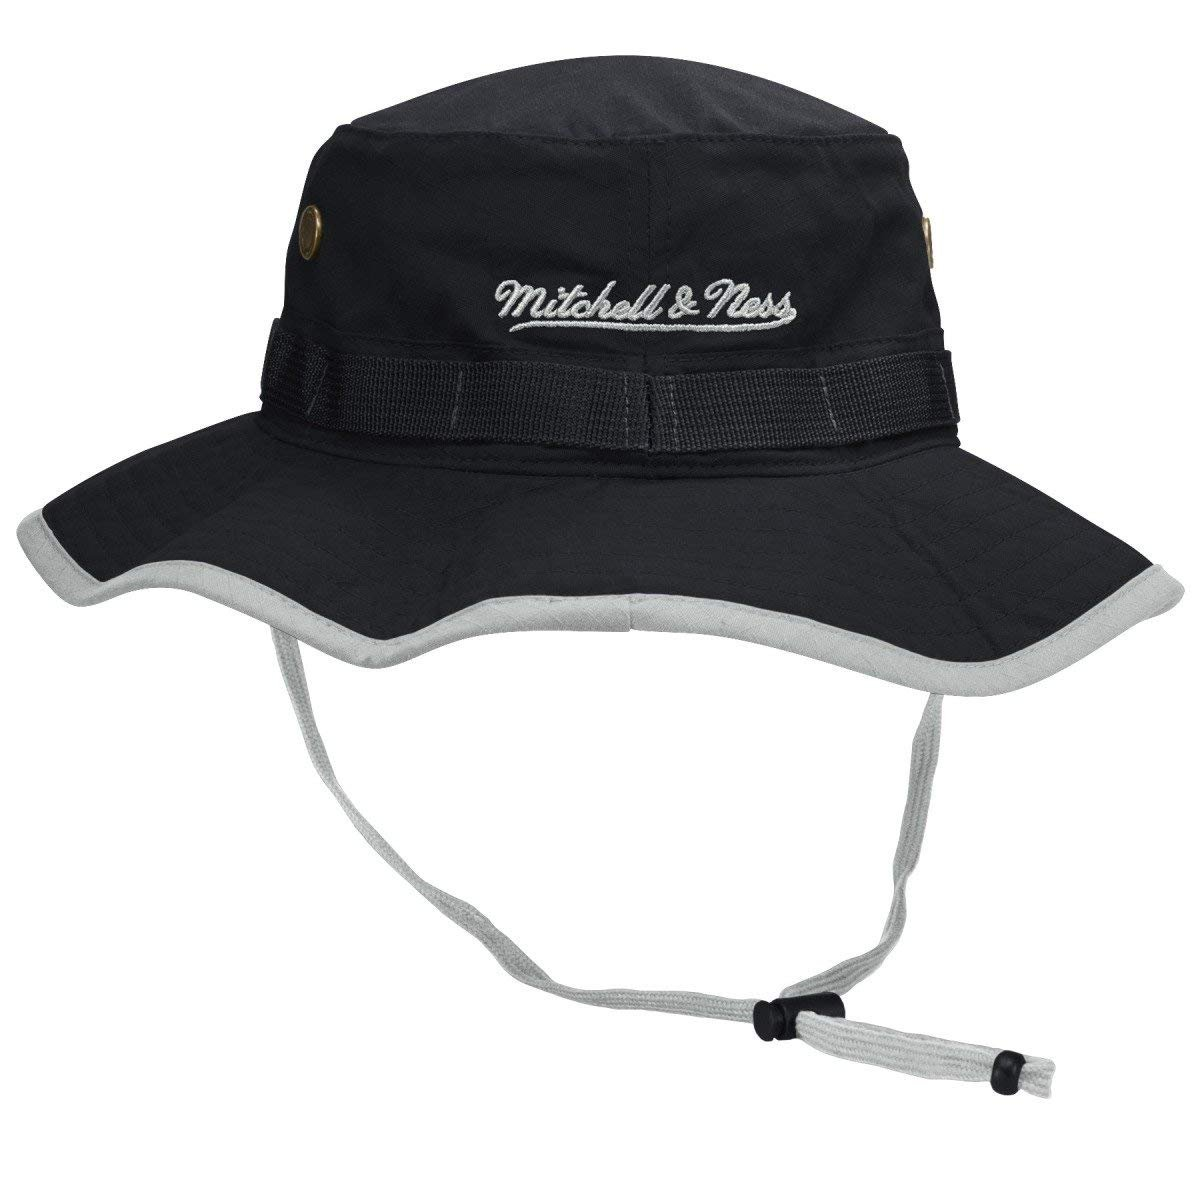 03ca6f4144d97 Amazon.com   Mitchell   Ness Olive Boonie Bucket Hat   Clothing